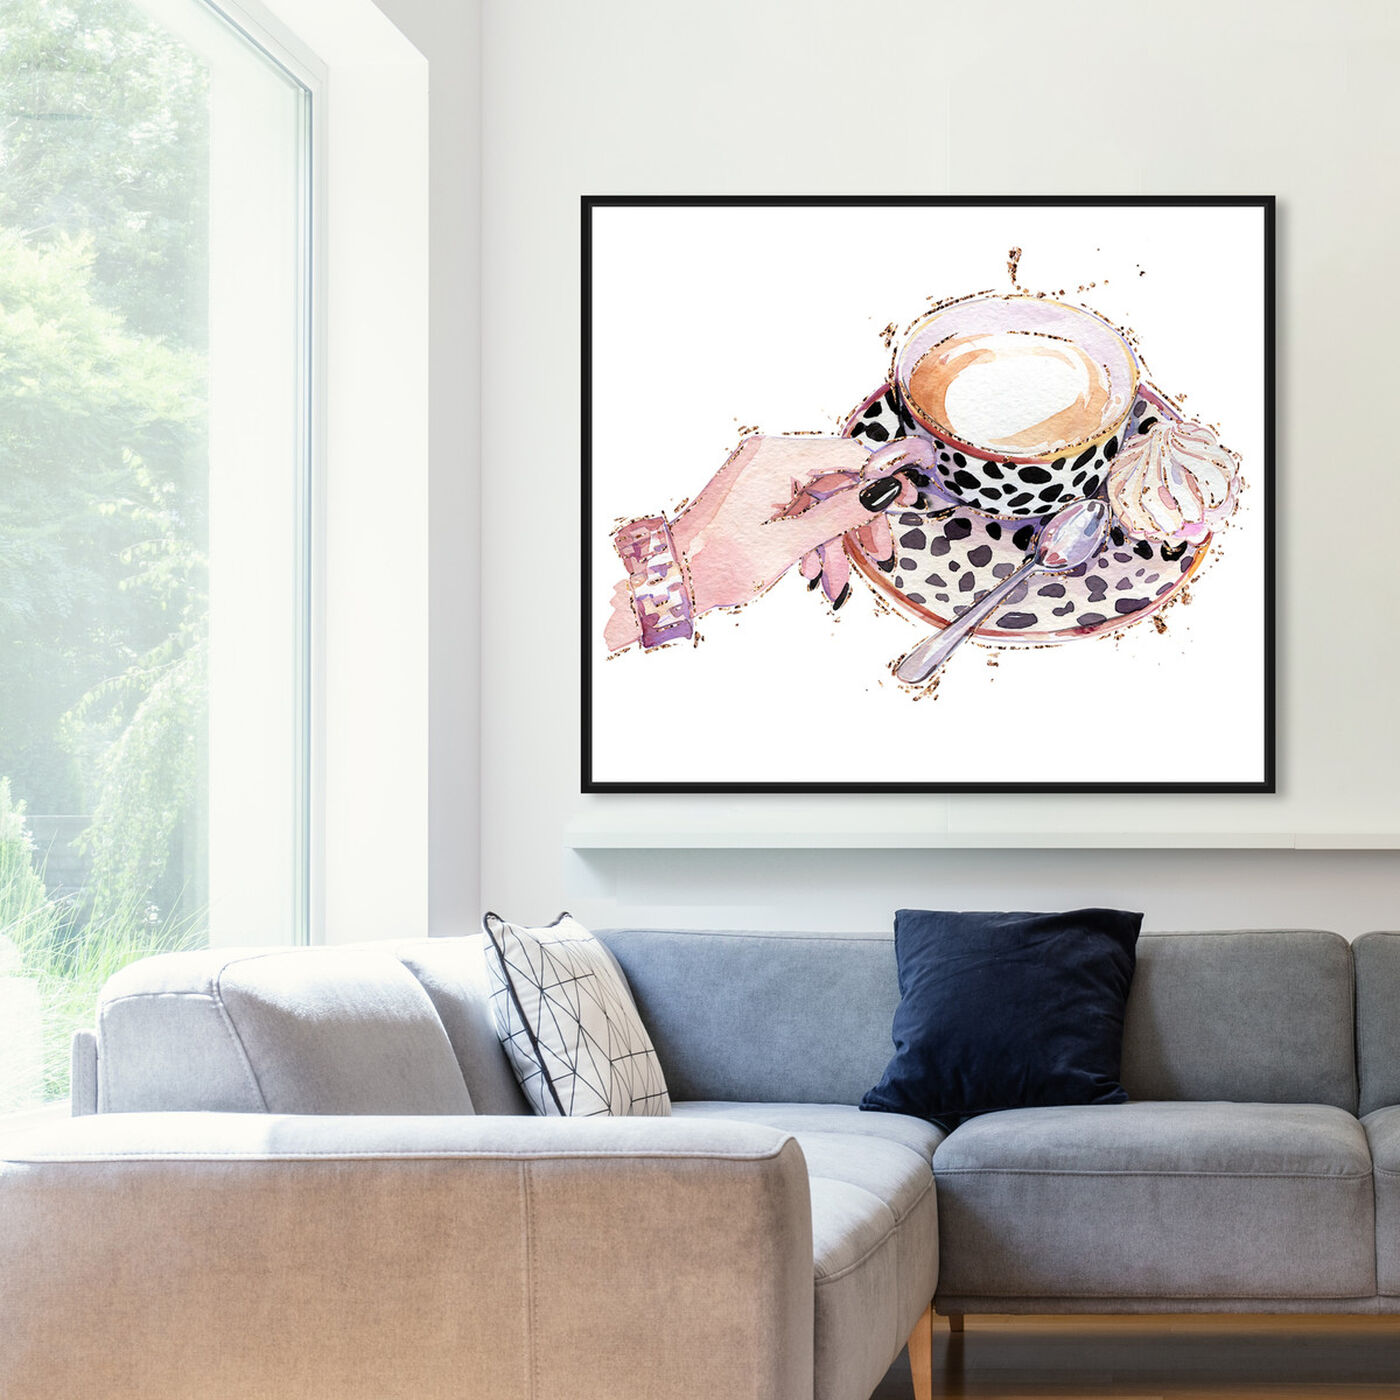 Hanging view of Sweet Meringue and Coffee featuring drinks and spirits and coffee art.